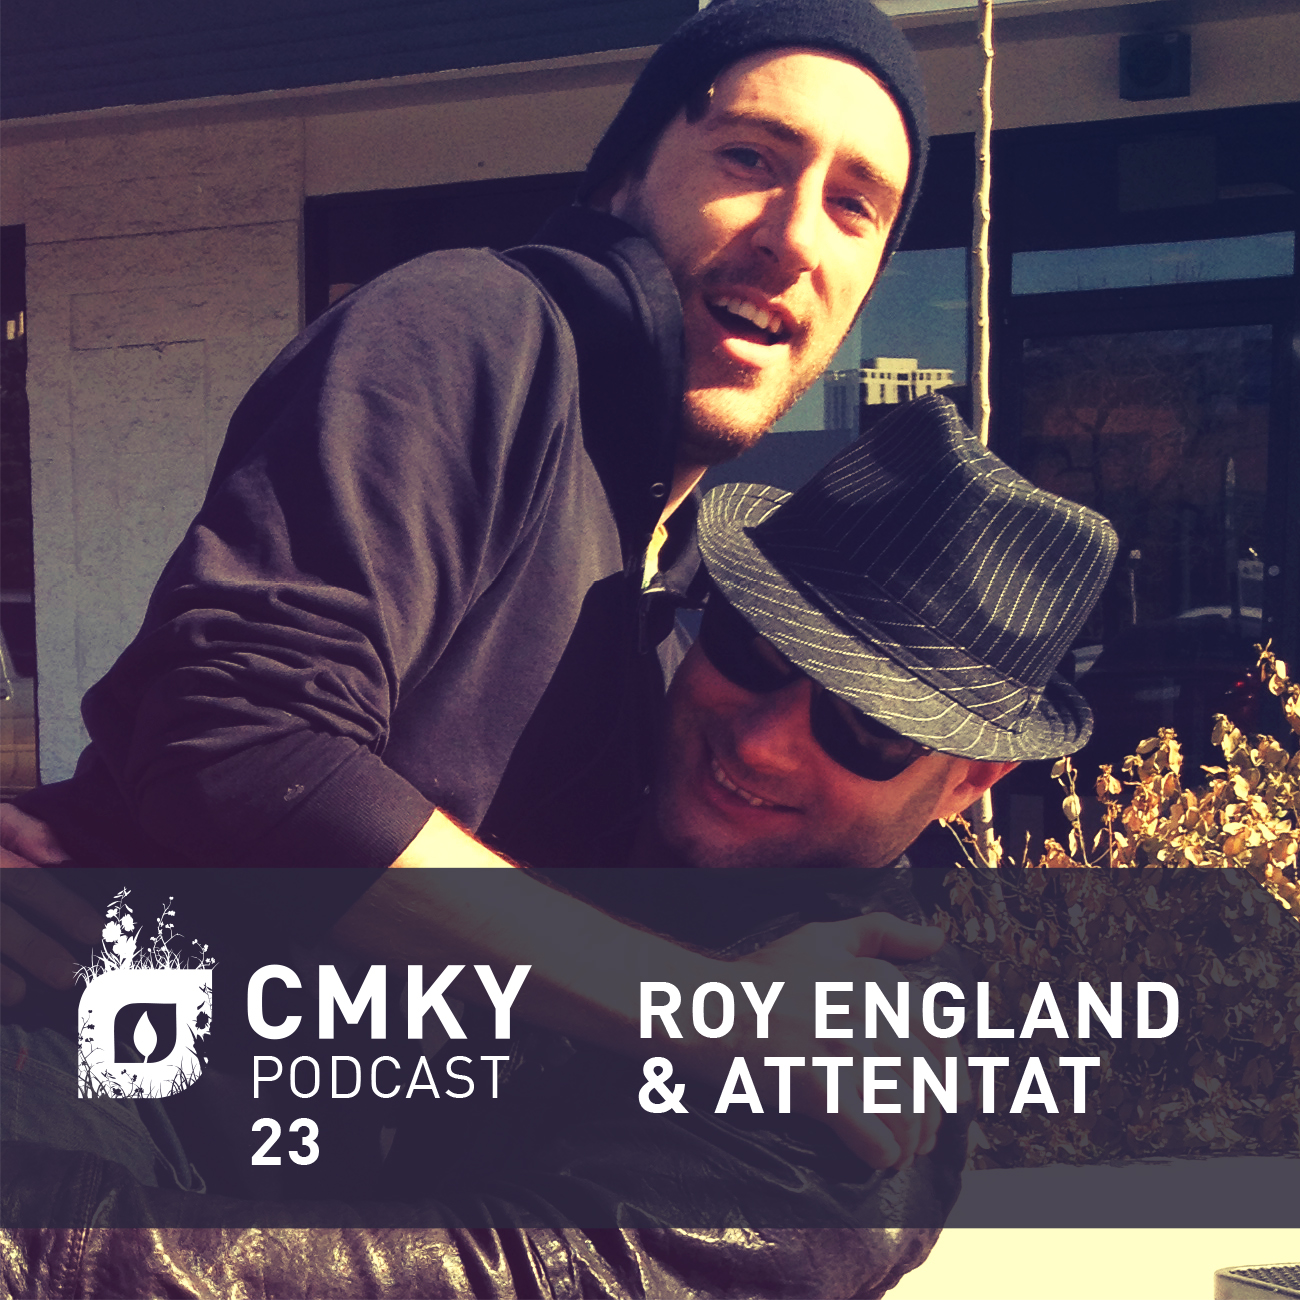 PODCAST_23_ROY_ENGLAND_AND_ATTENTAT